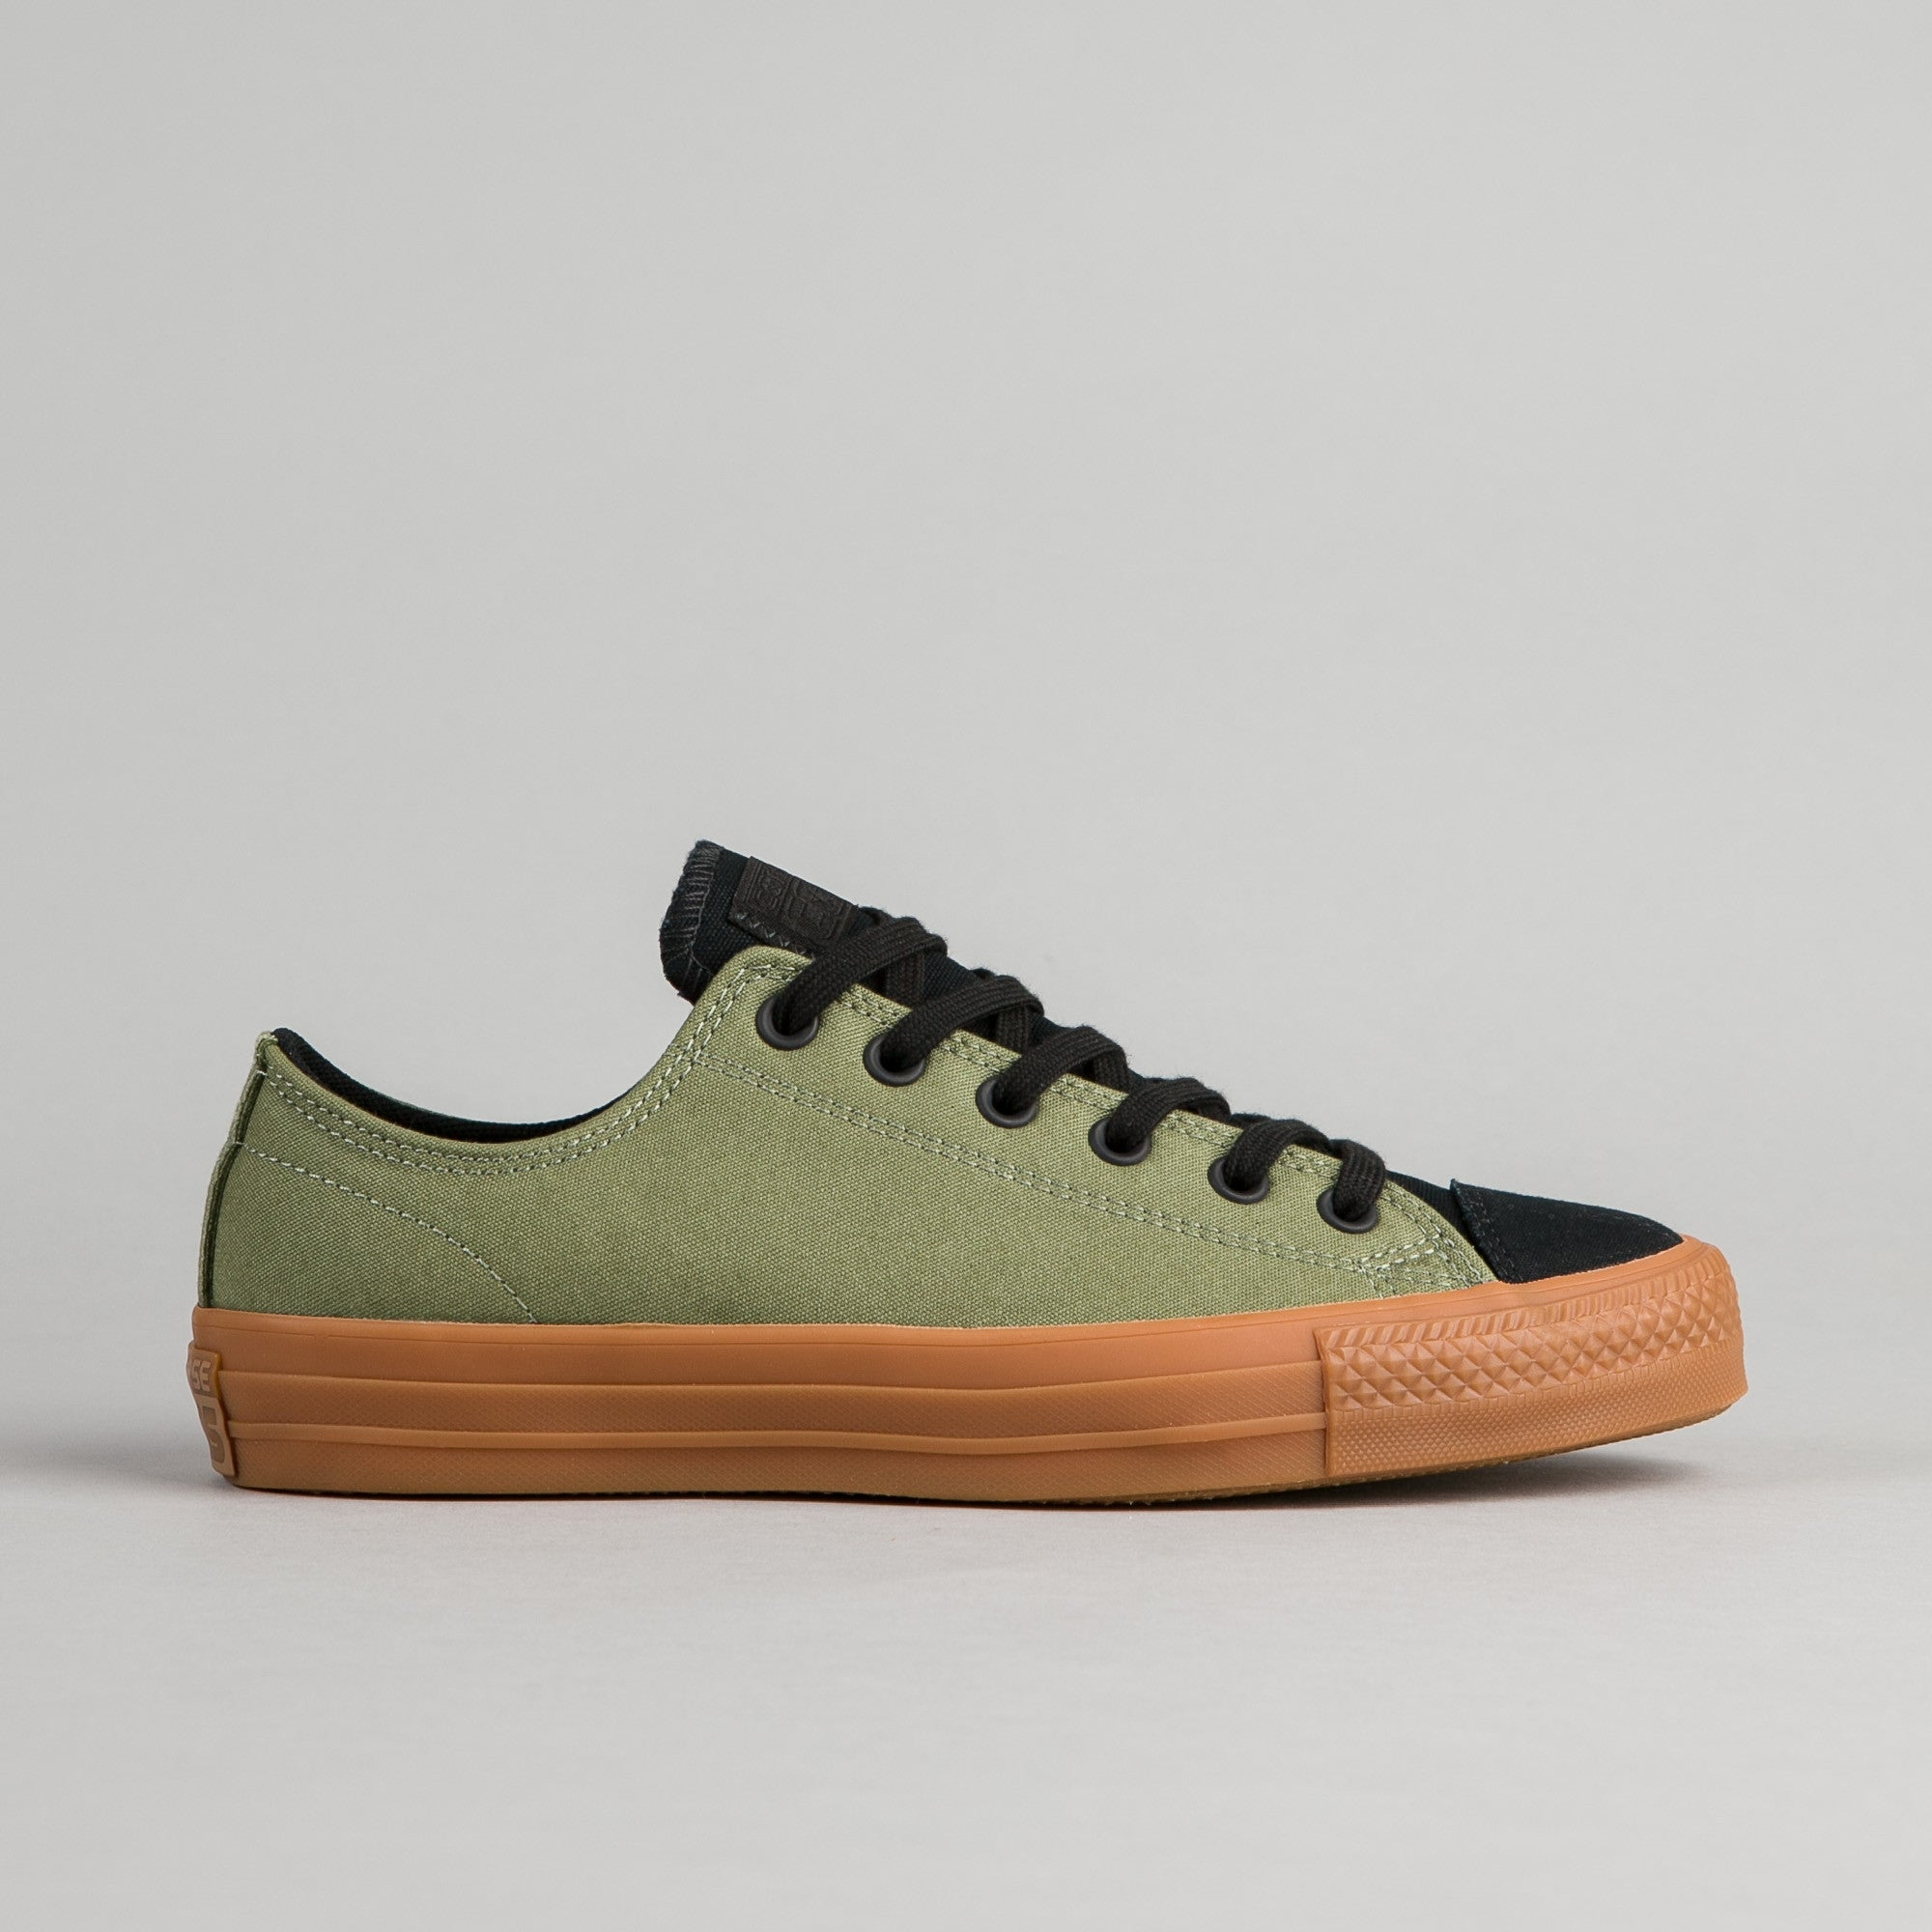 Converse CTAS Pro Suede Backed Canvas OX Shoes - Green